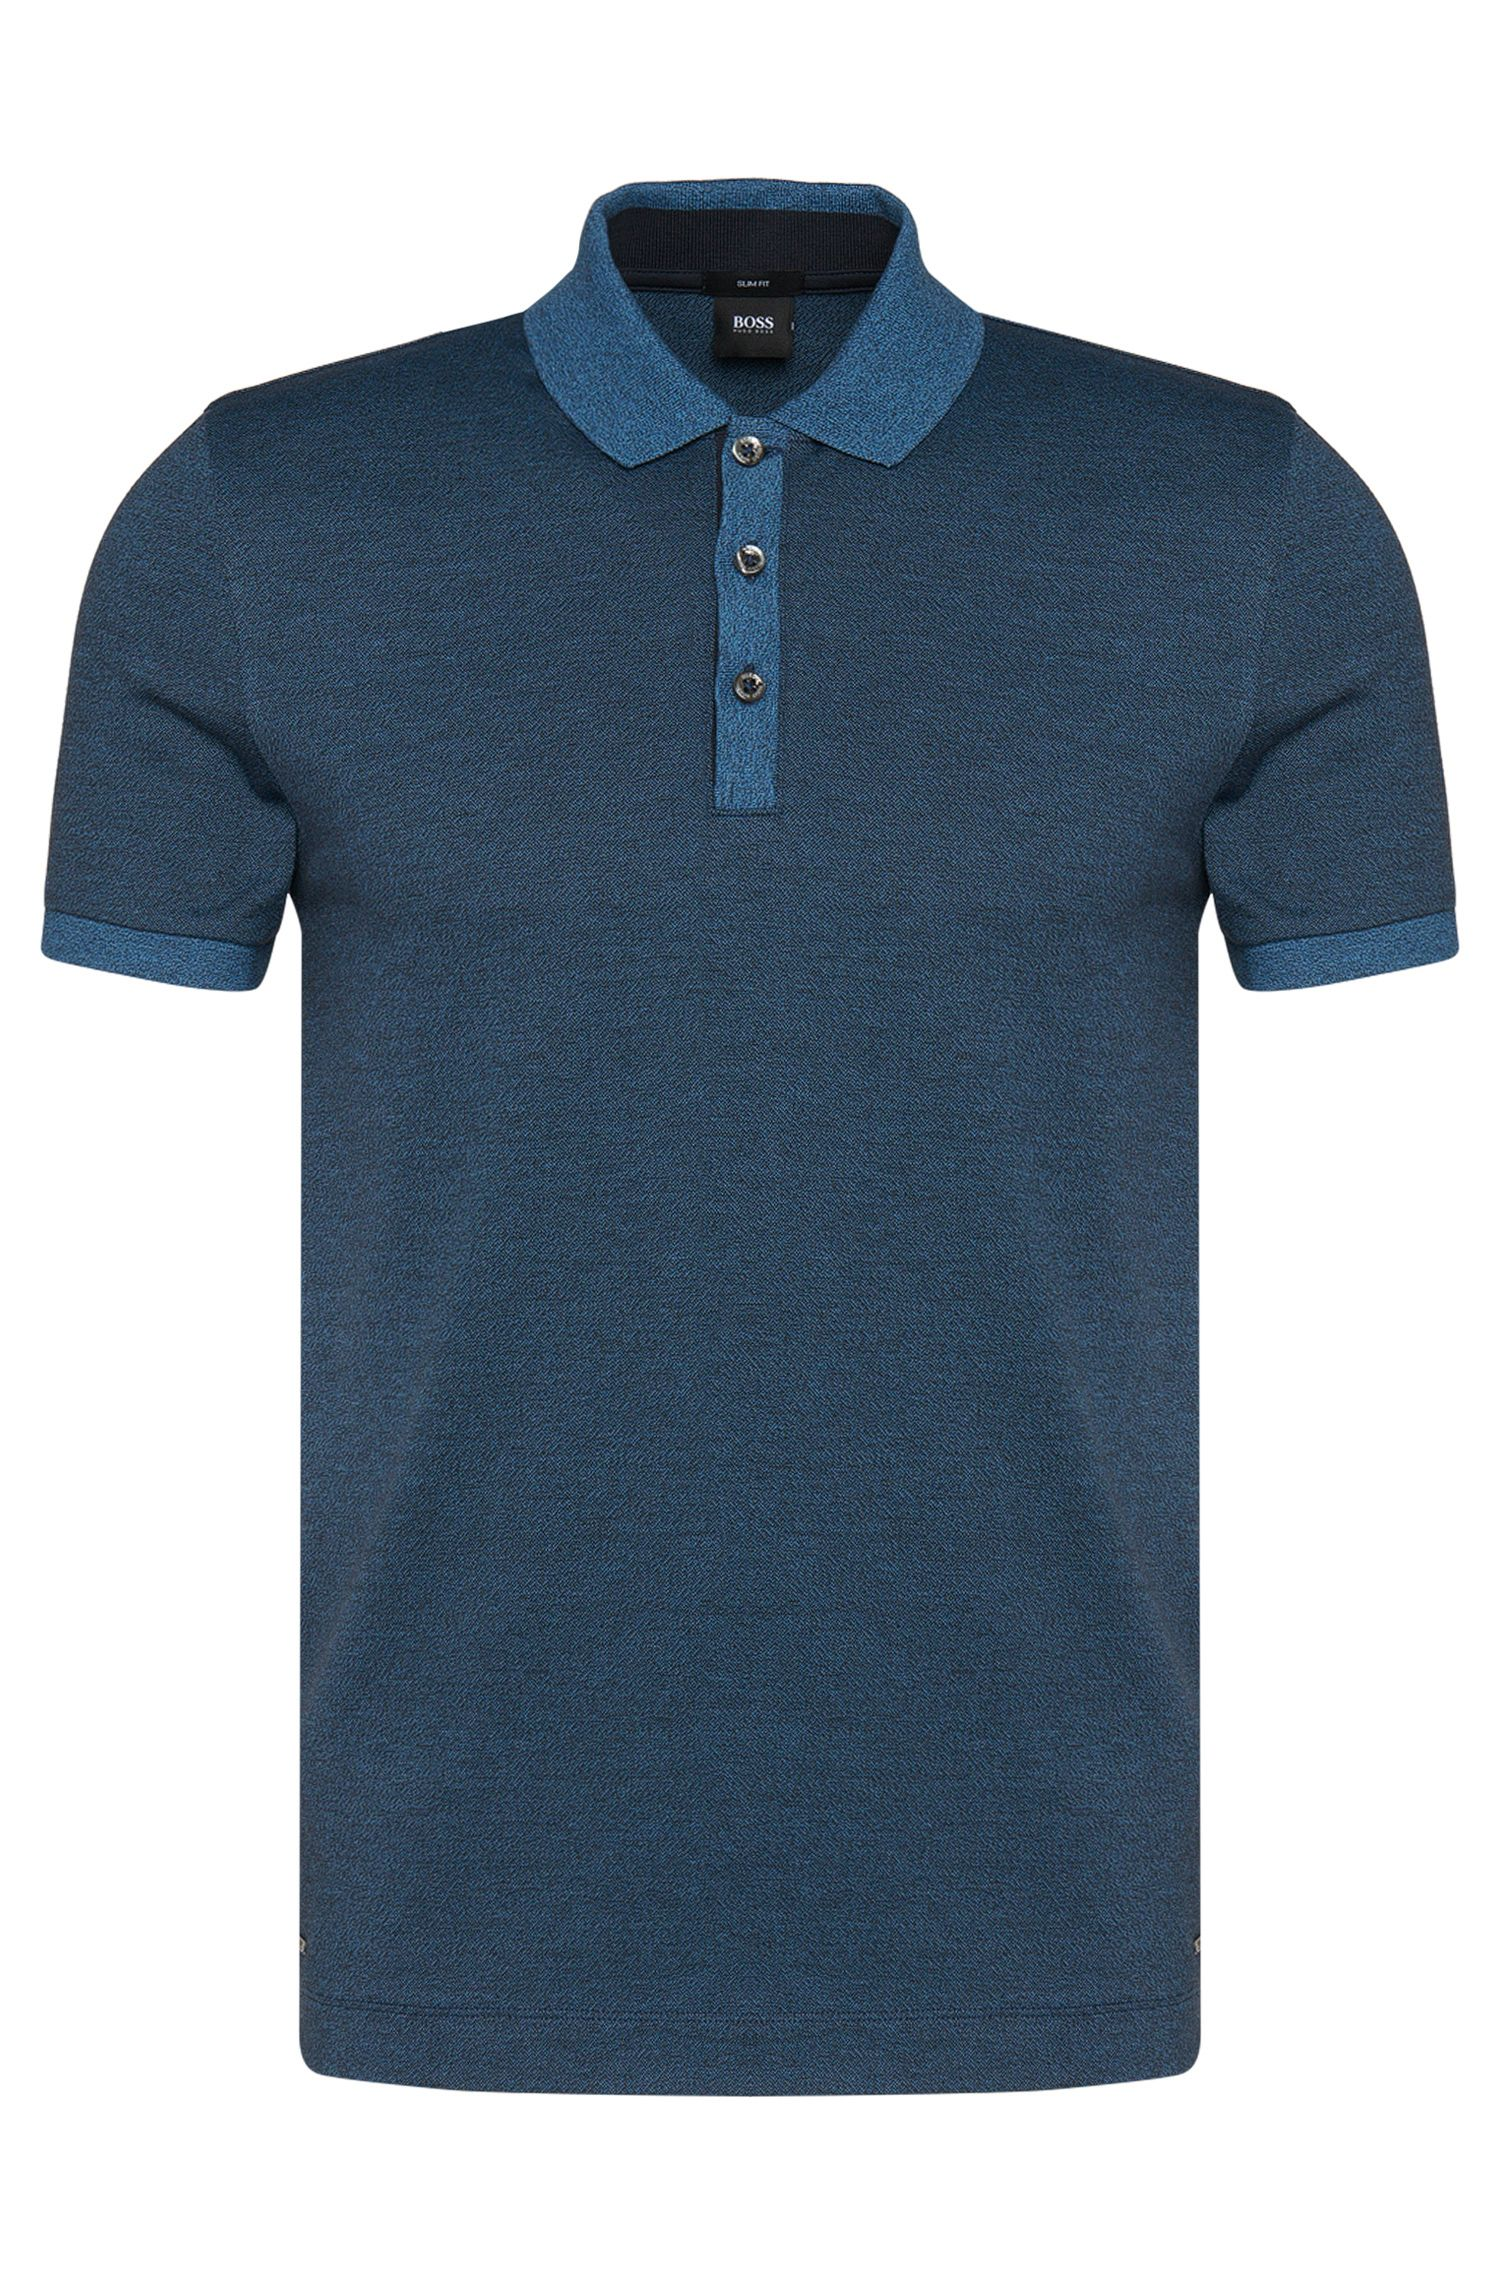 Cotton Moluine Melange Polo Shirt, Slim Fit | Phillipson